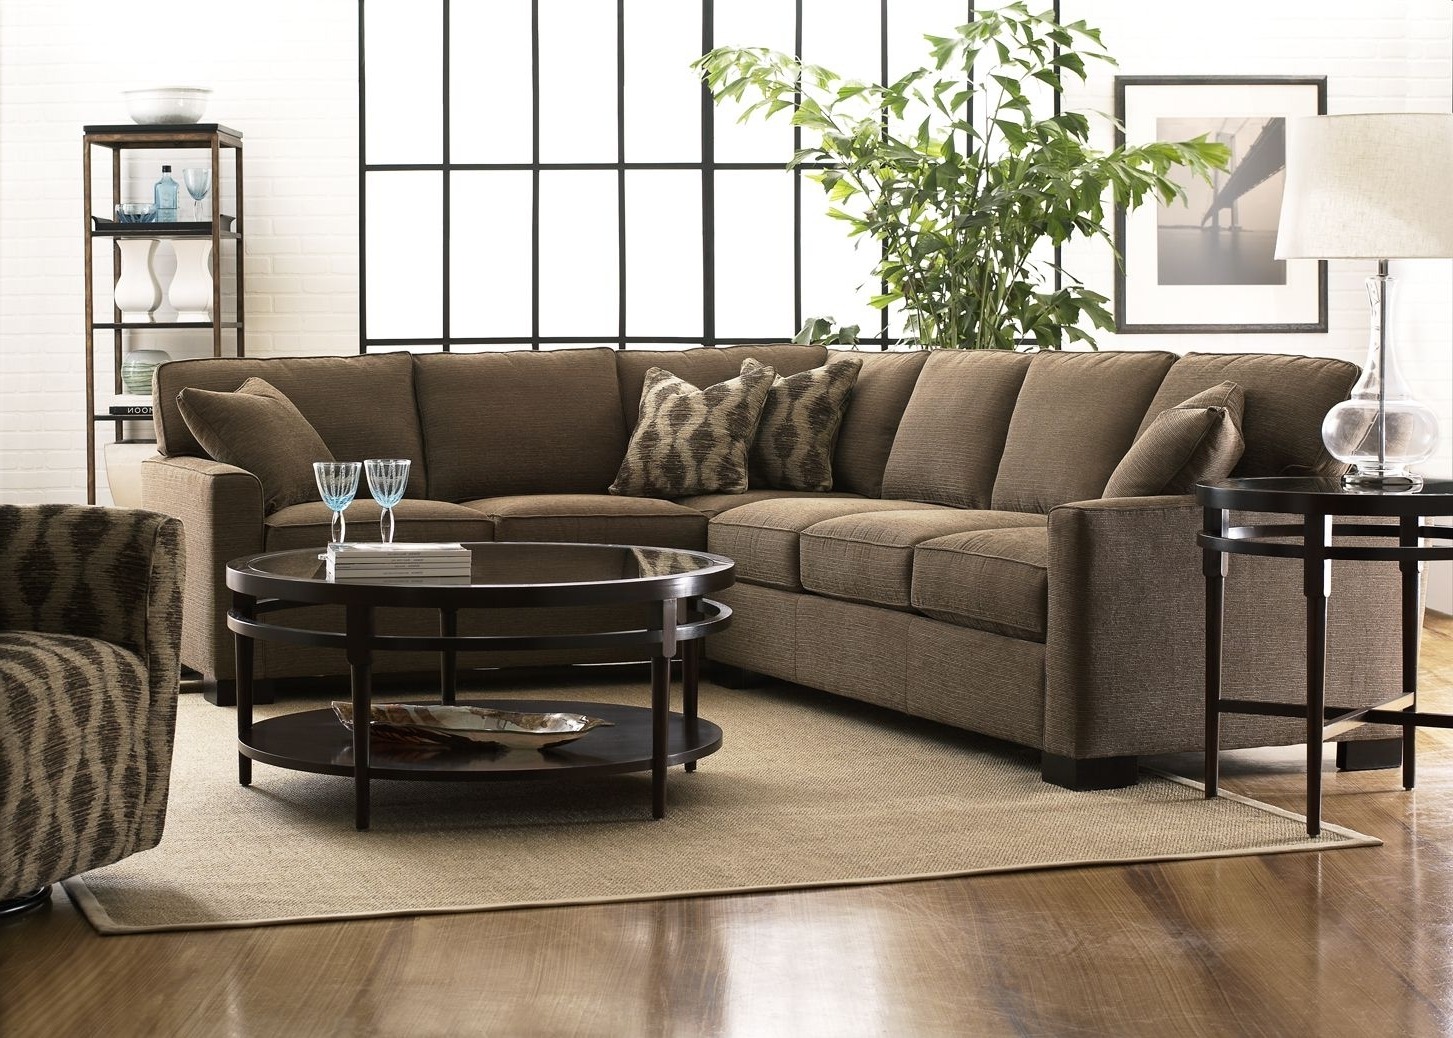 Philippines Sectional Sofas Throughout Well Known Livingroom : Best Sectional Sofa For Small Living Room Sofas (View 15 of 20)